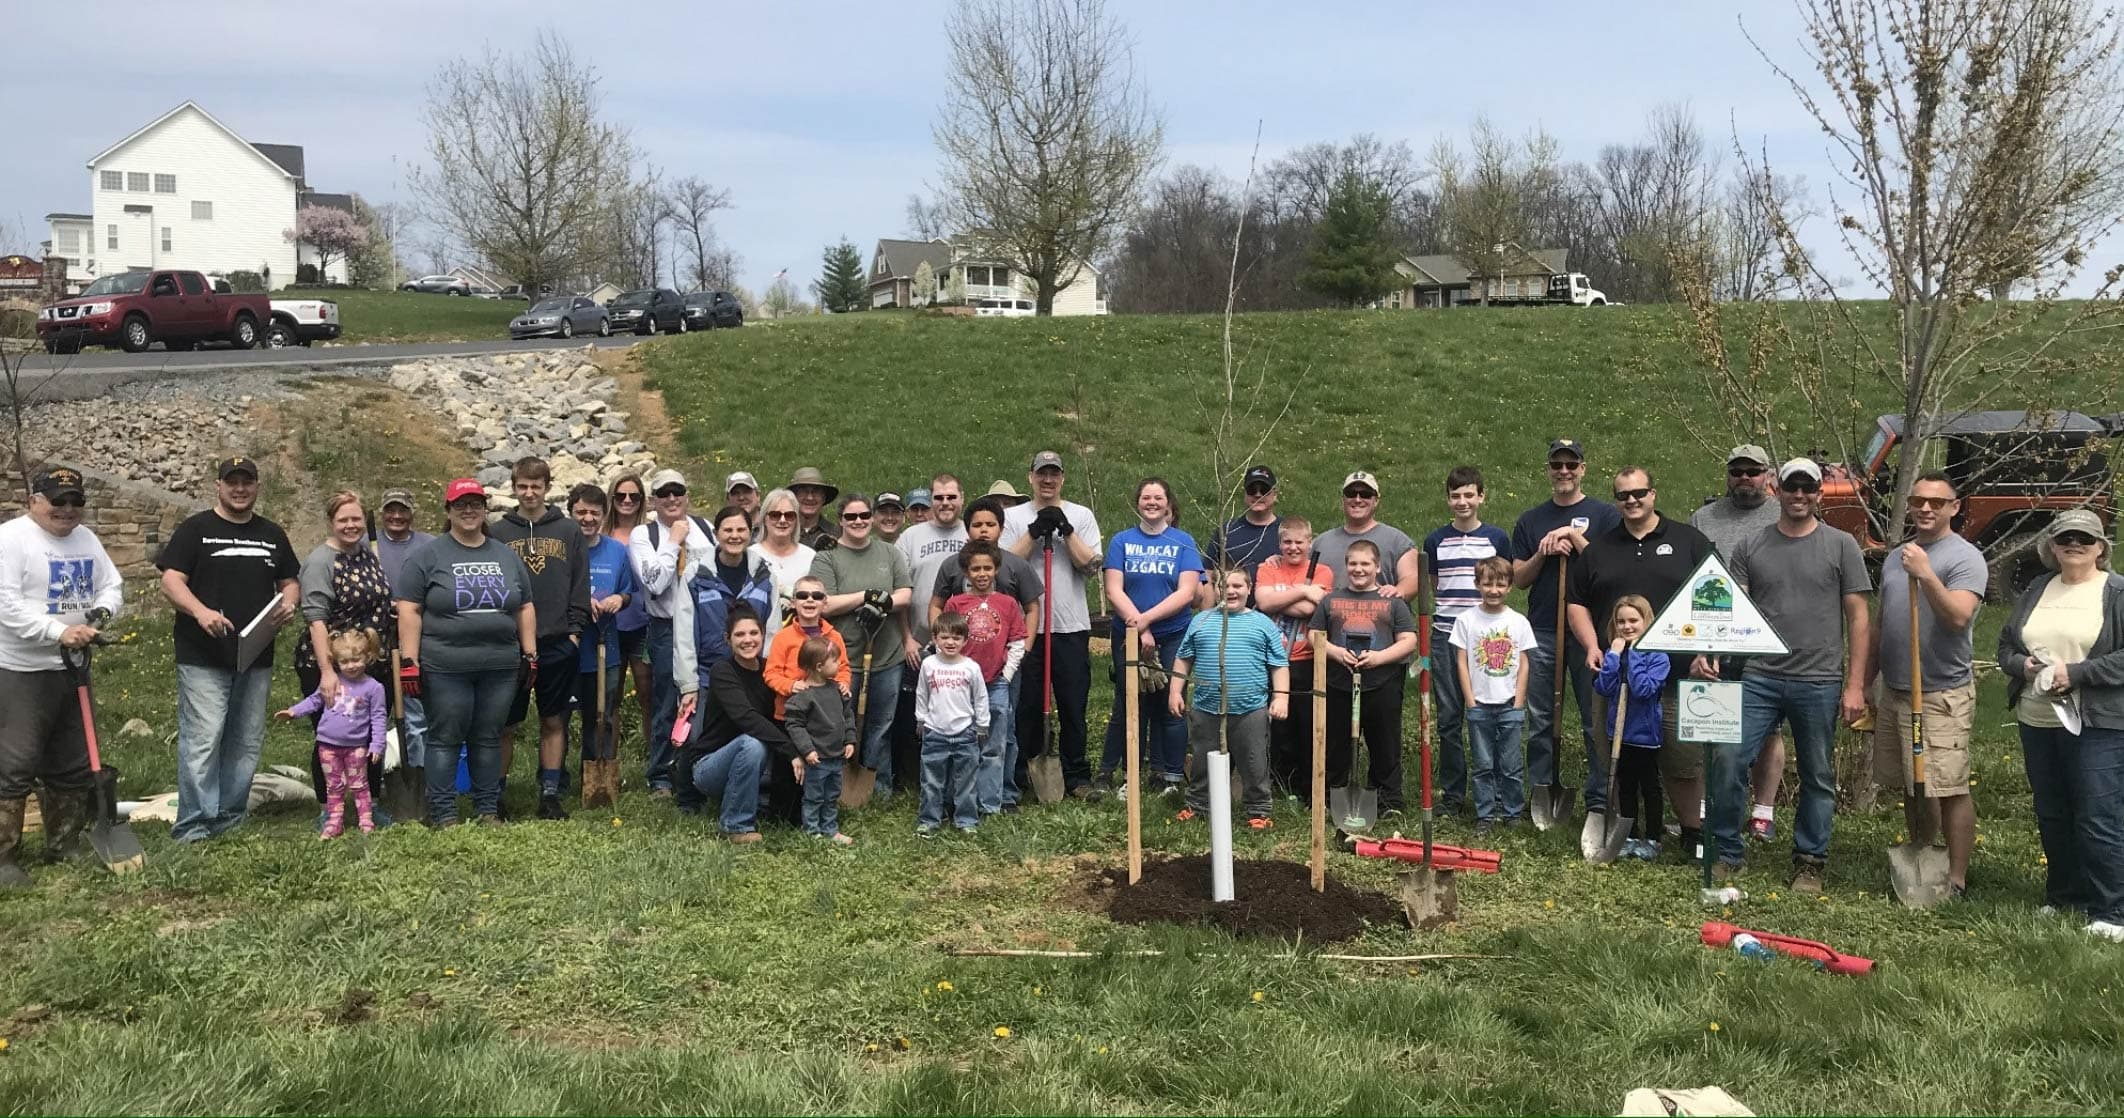 Apple Knolls HOA lives up to its namesake by planting trees!